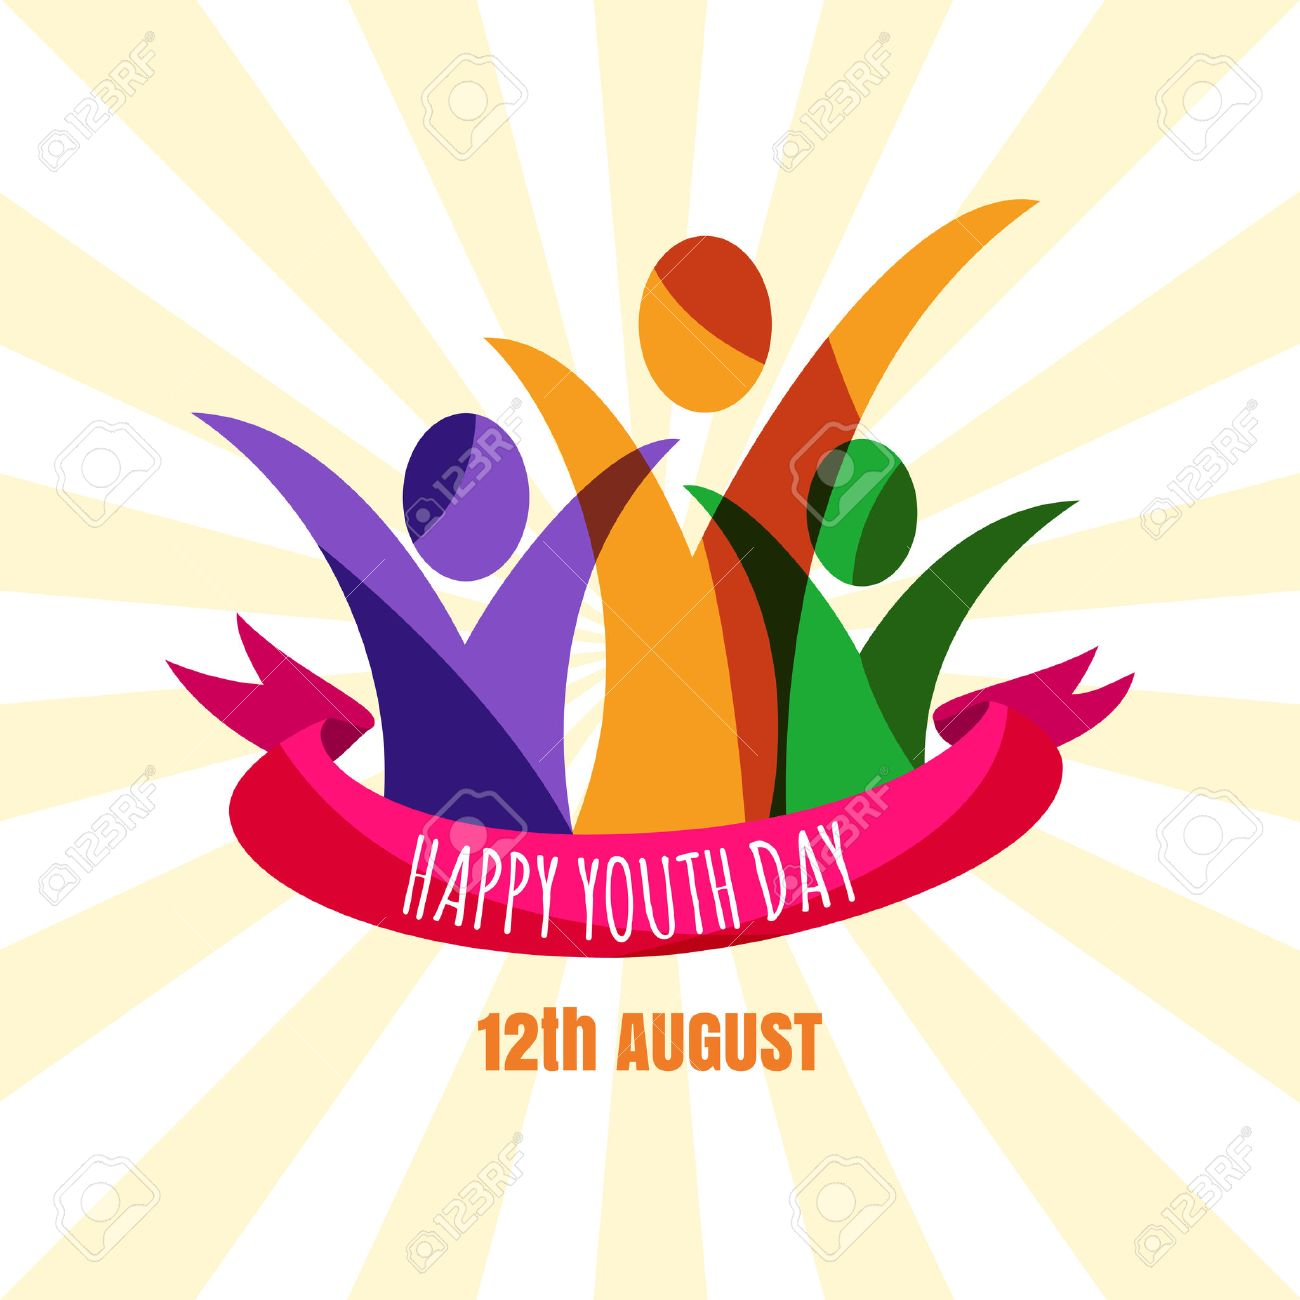 Poster design for youth - Multicolor Abstract Young Happy People With Ribbon Design Concept For International Youth Day Celebrations